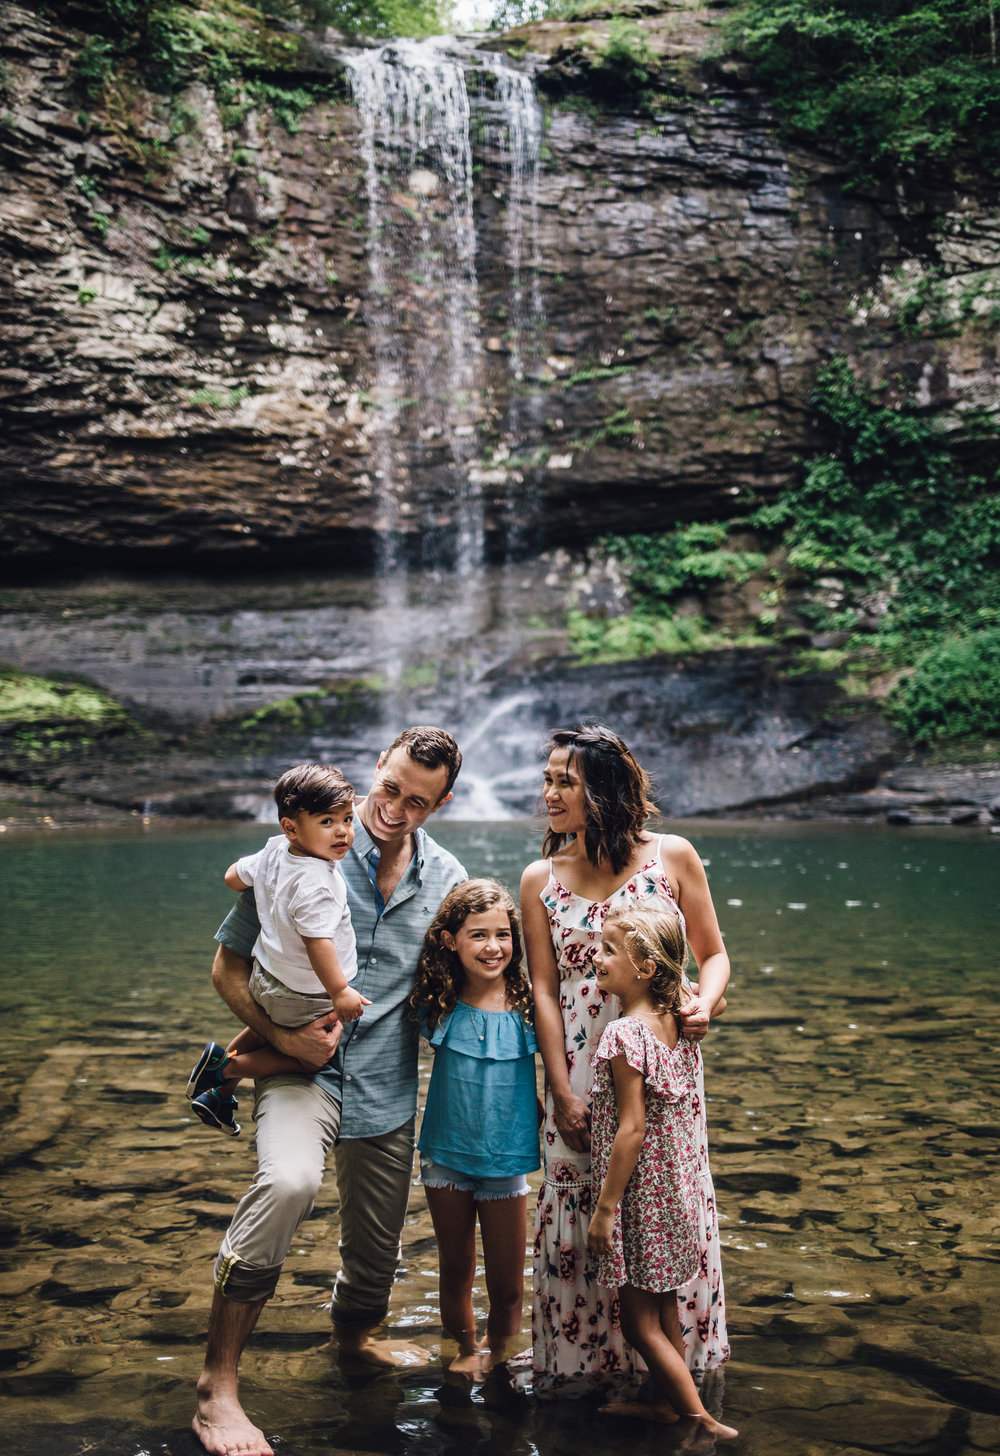 The Goodman's - I found Crystal through Instagram after searching through hundreds of photographers in the Atlanta area. What I was looking for wasn't your typical photoshoot. I wanted to find a photographer adventurous enough to come document my family of 5 hiking through Cloudland Canyon.Crystal's style is both light and moody at the same time. I don't know how that's possible, but through her lens it is. Besides the obvious talent she has, what makes her a gem is her sunny disposition and easy-going nature. Crystal was amazing with the kids and she put everyone at ease! Our pictures came out like they were from a magazine. I actually contacted Crystal again to photograph our AirBnb. We needed some fresh pictures that would draw bookings...voila! Once again, Crystal delivered. We've had so many compliments on our pictures and not to mention, so many bookings. After all, pictures tell the story 10x better than words could. I highly highly recommend Crystal for her talent, her professionalism and her dedication to her craft.